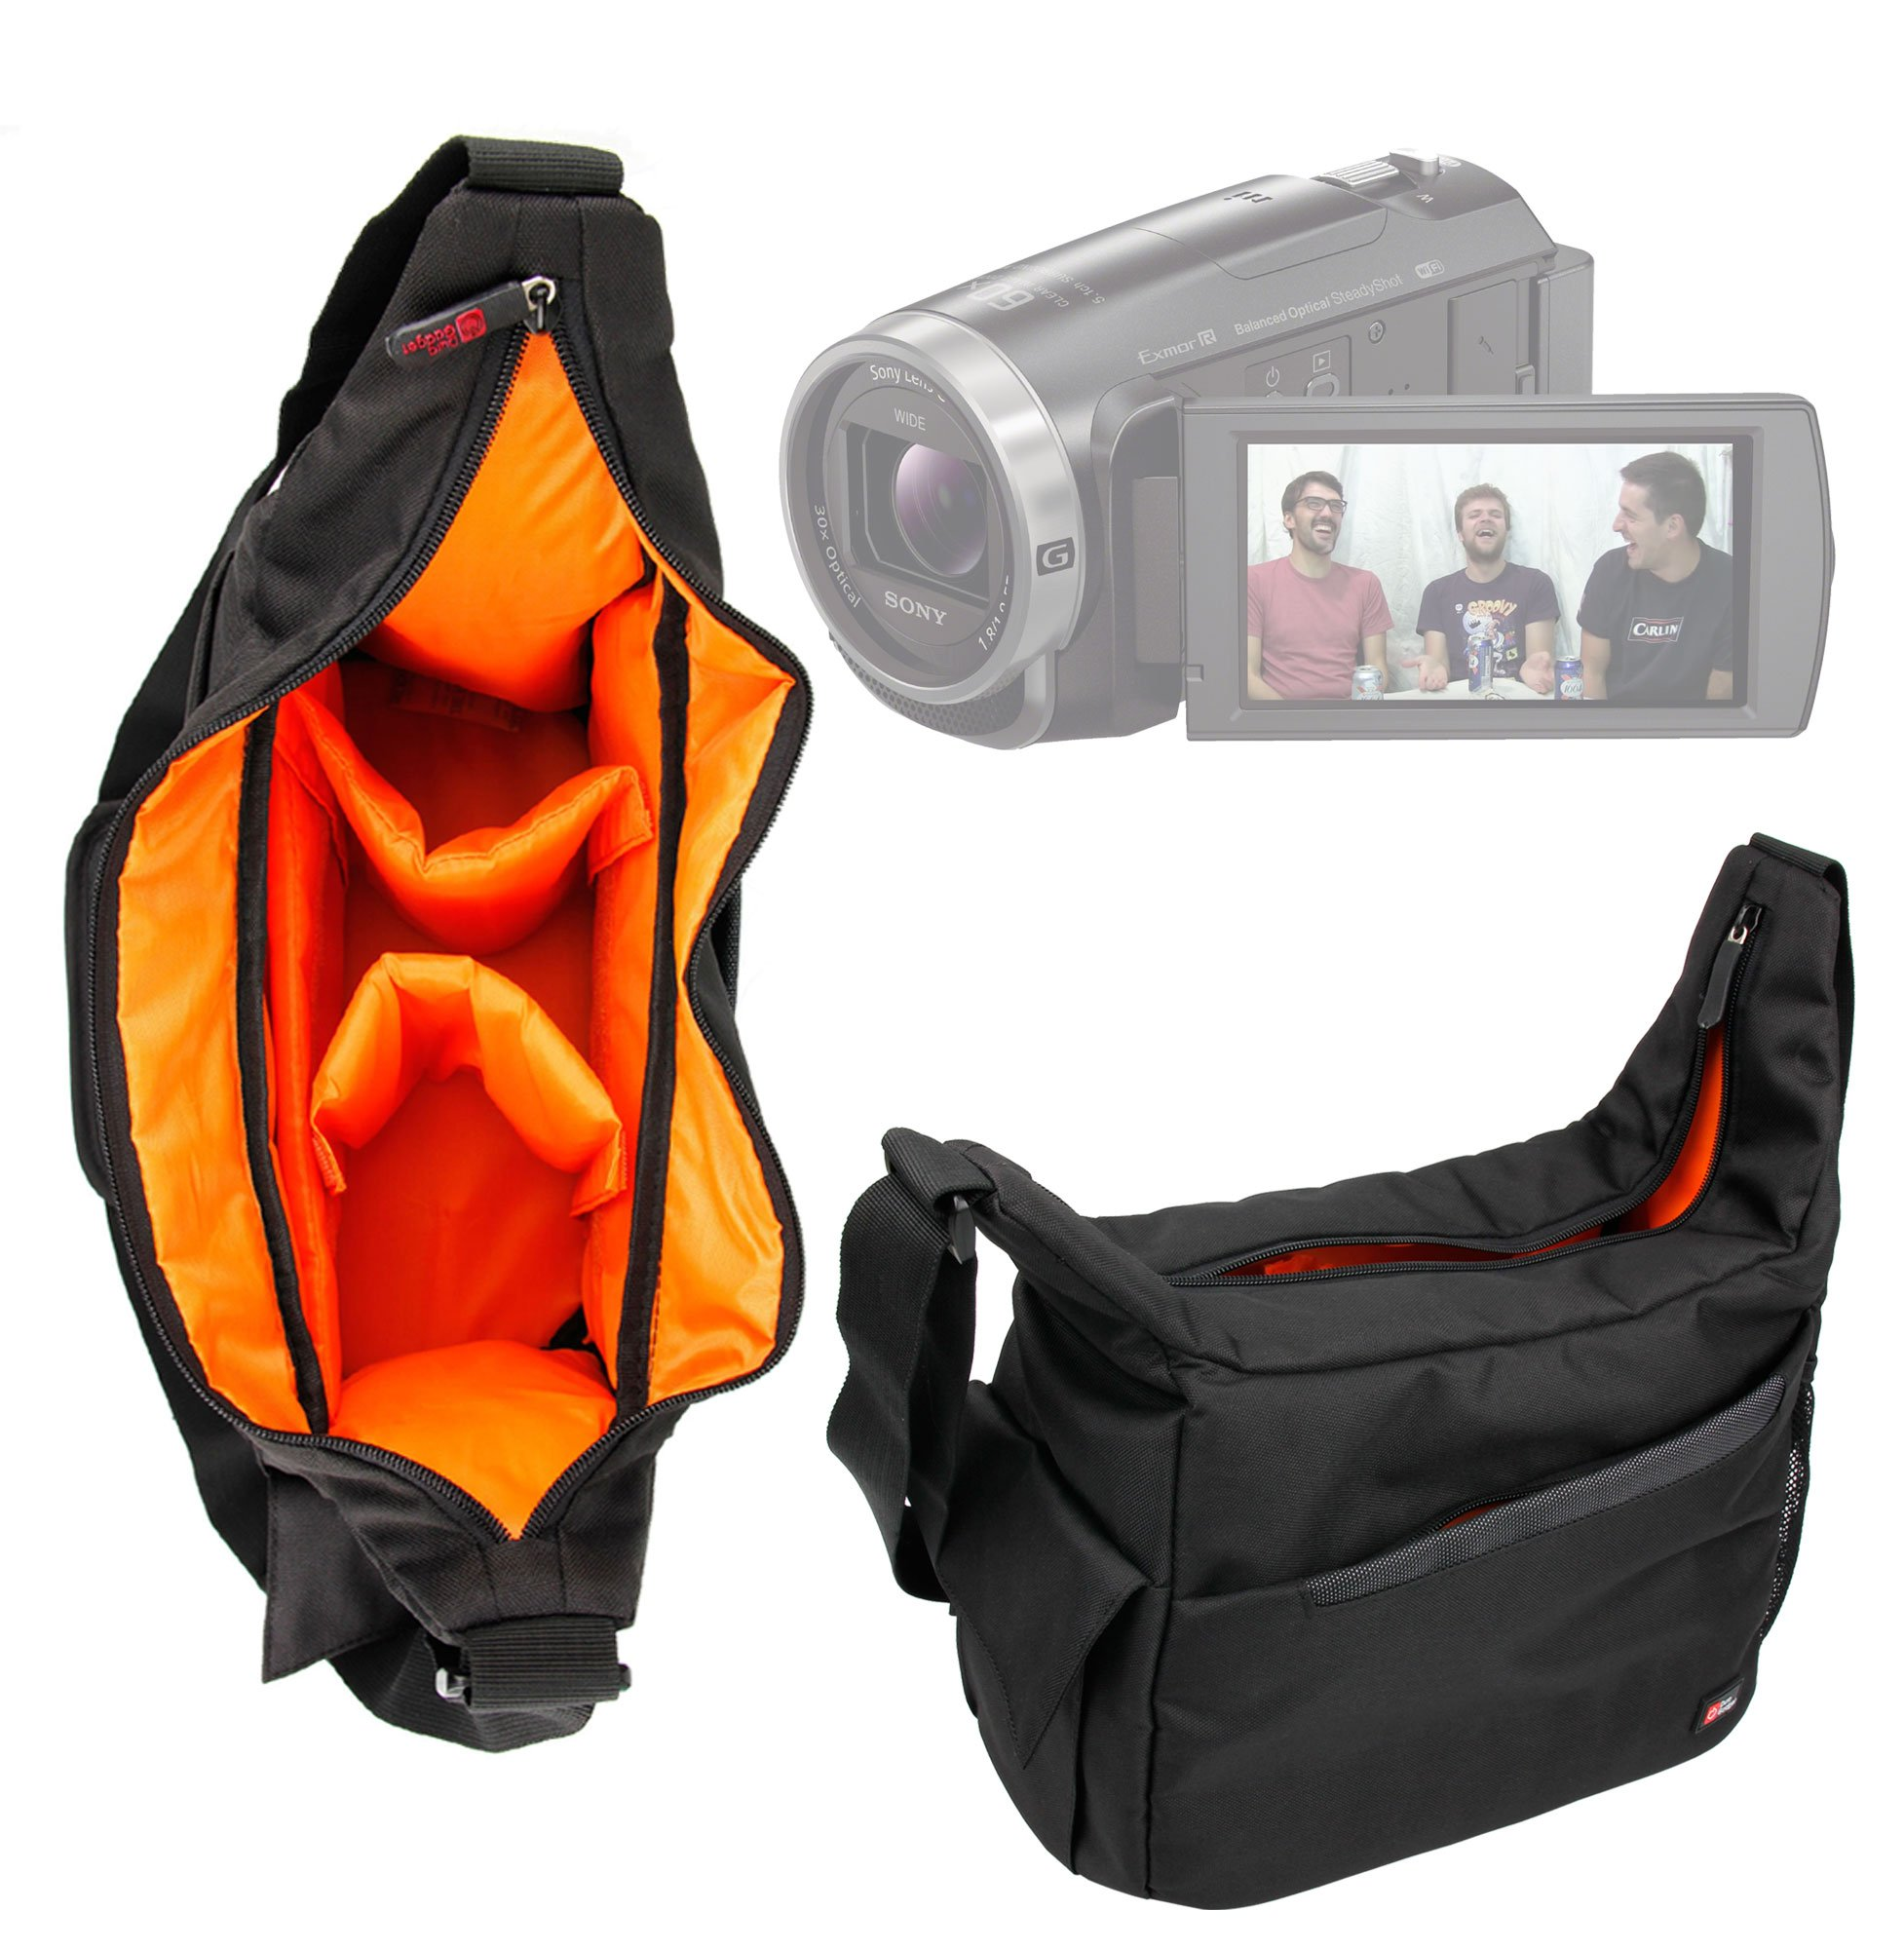 DURAGADGET Premium Quality Shoulder 'Sling' Bag in Black & Orange - Suitable for Sony FDR-AX53 4K Handycam - with Adjustable Padded Interior by DURAGADGET